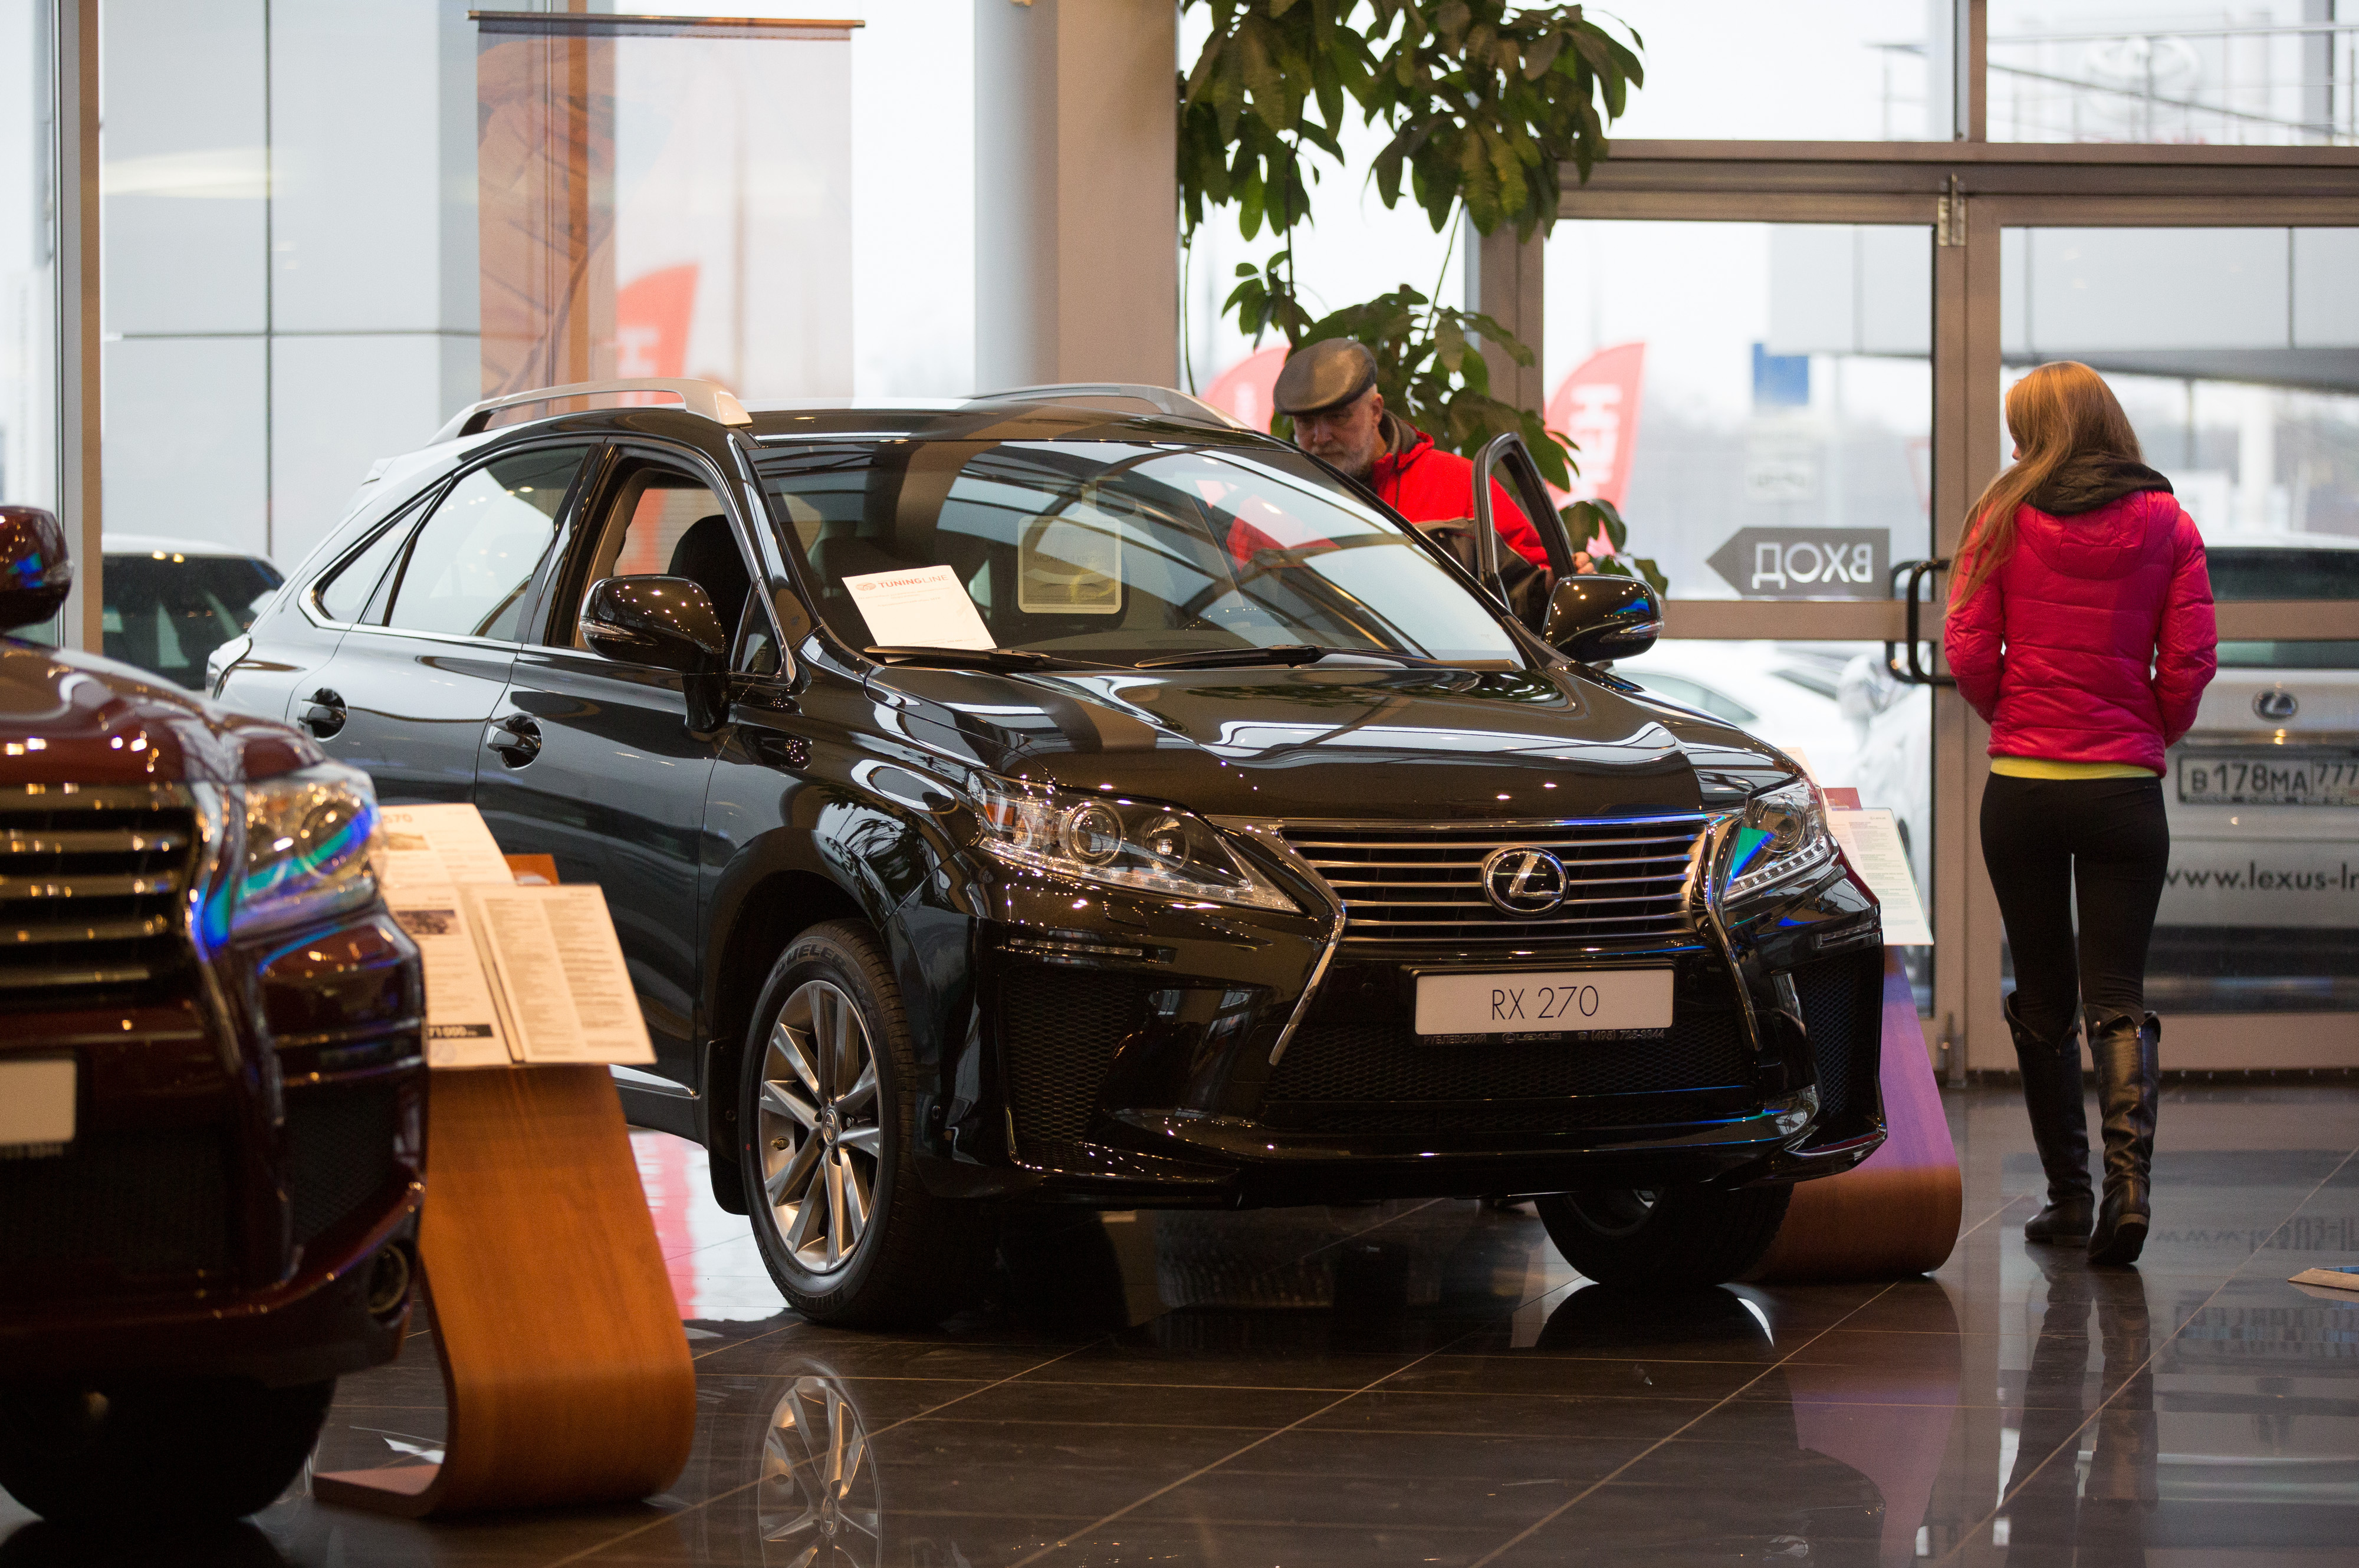 A customer checks out the interior of a Lexus RX270 vehicle for sale inside a Lexus automobile dealership, a unit of Toyota Motor Corp., in Moscow, Russia, on Tuesday, Dec. 16, 2014. Surging borrowing costs pile pressure on the economy of the world's biggest energy exporter, buckling under the weight of slumping crude prices and the impact of the sanctions imposed over the conflict in Ukraine. Photographer: Andrey Rudakov/Bloomberg